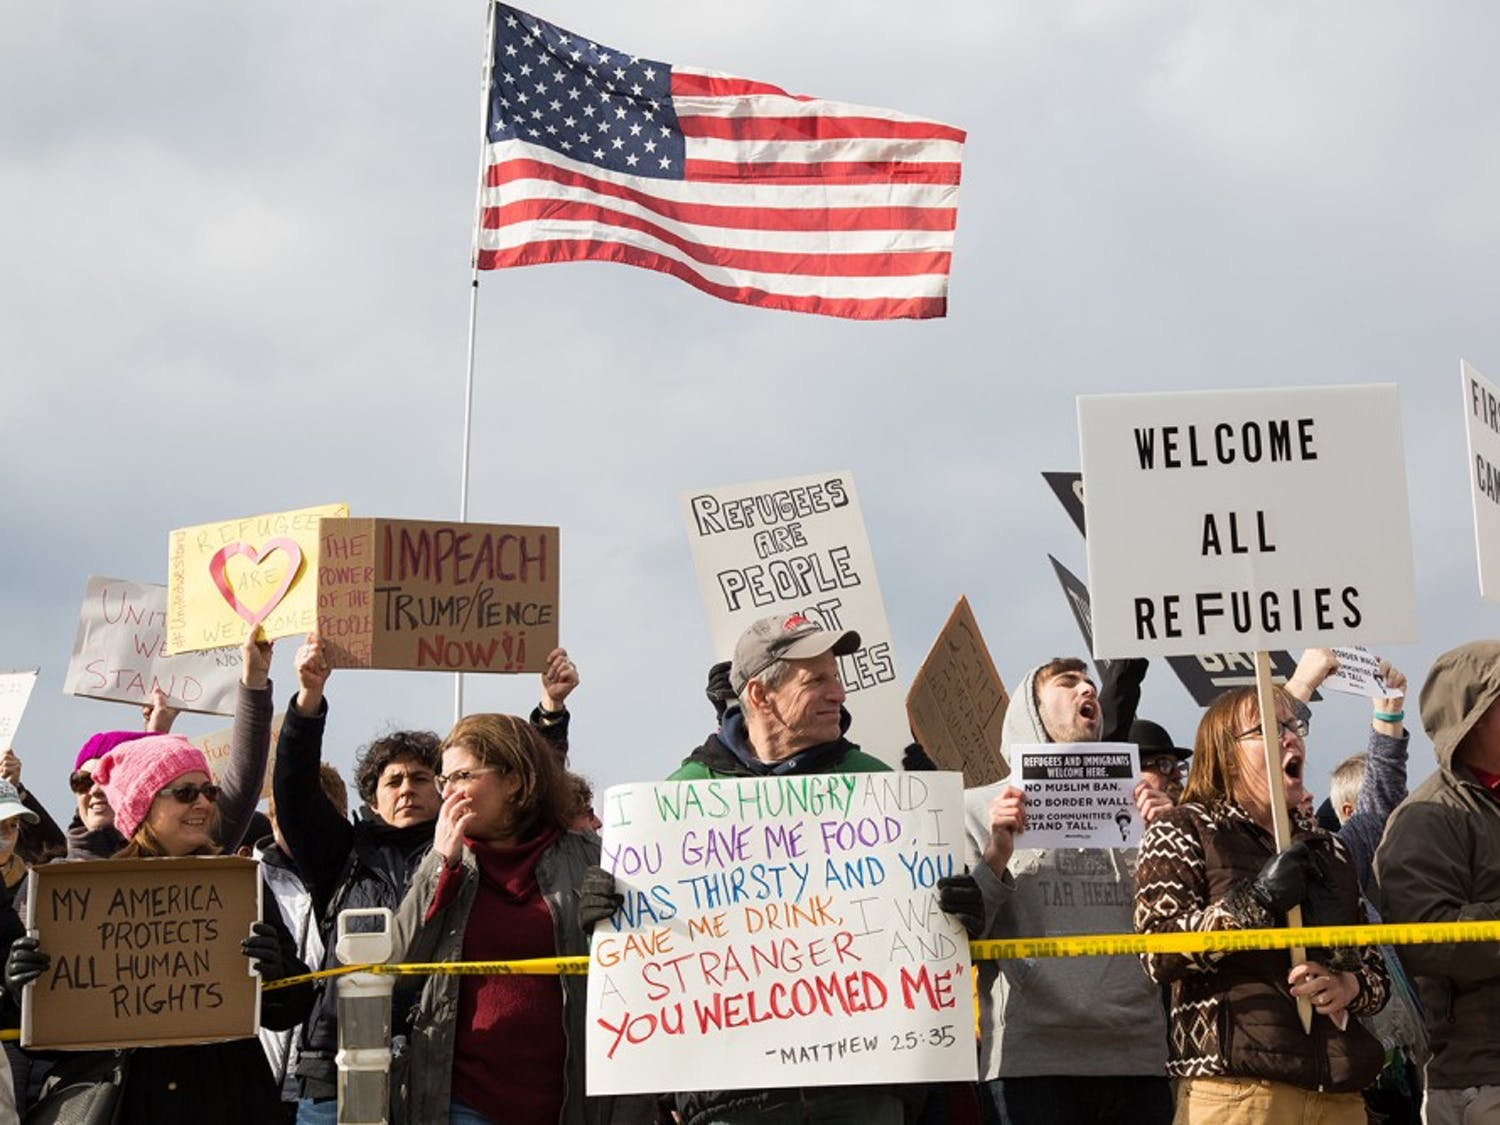 Approximately 1,000 protesters gather outside terminal two at Raleigh-Durham International Airport Sunday in response to President Donald Trump's executive order banning immigrants from certain Muslim-majority countries from entering the U.S.